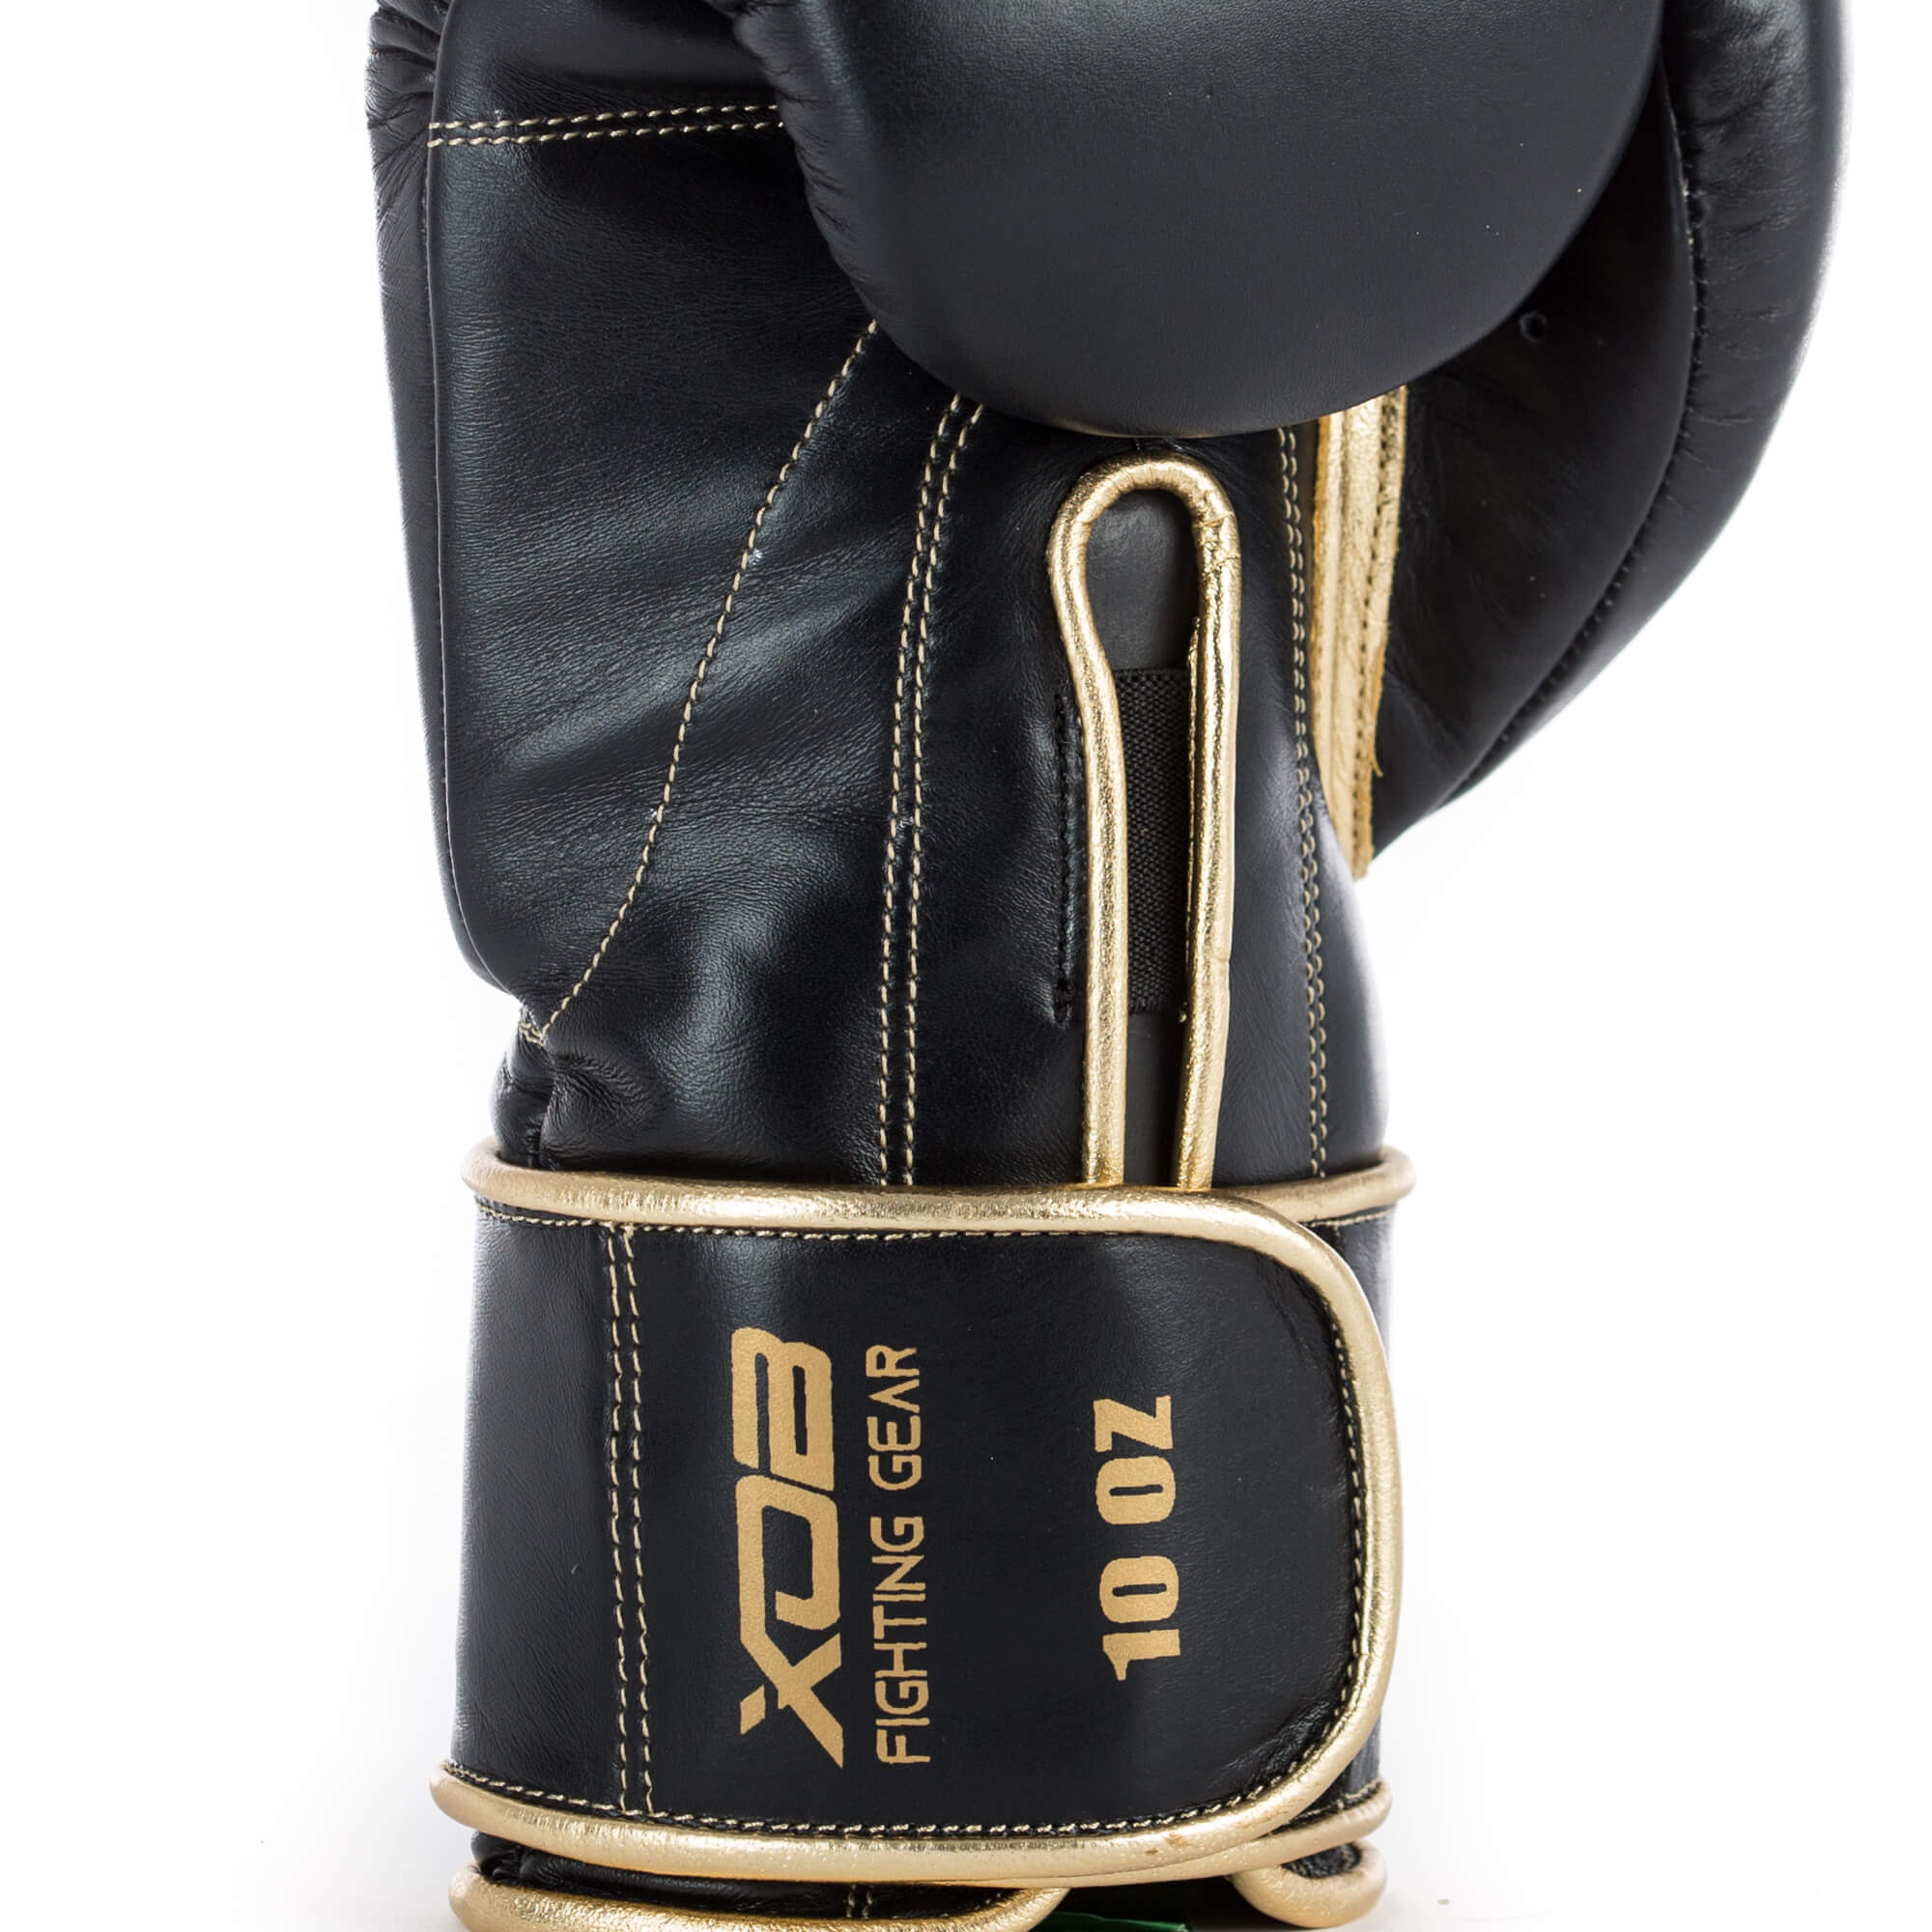 XOB Original Velcro Boxing Gloves - Black & Gold